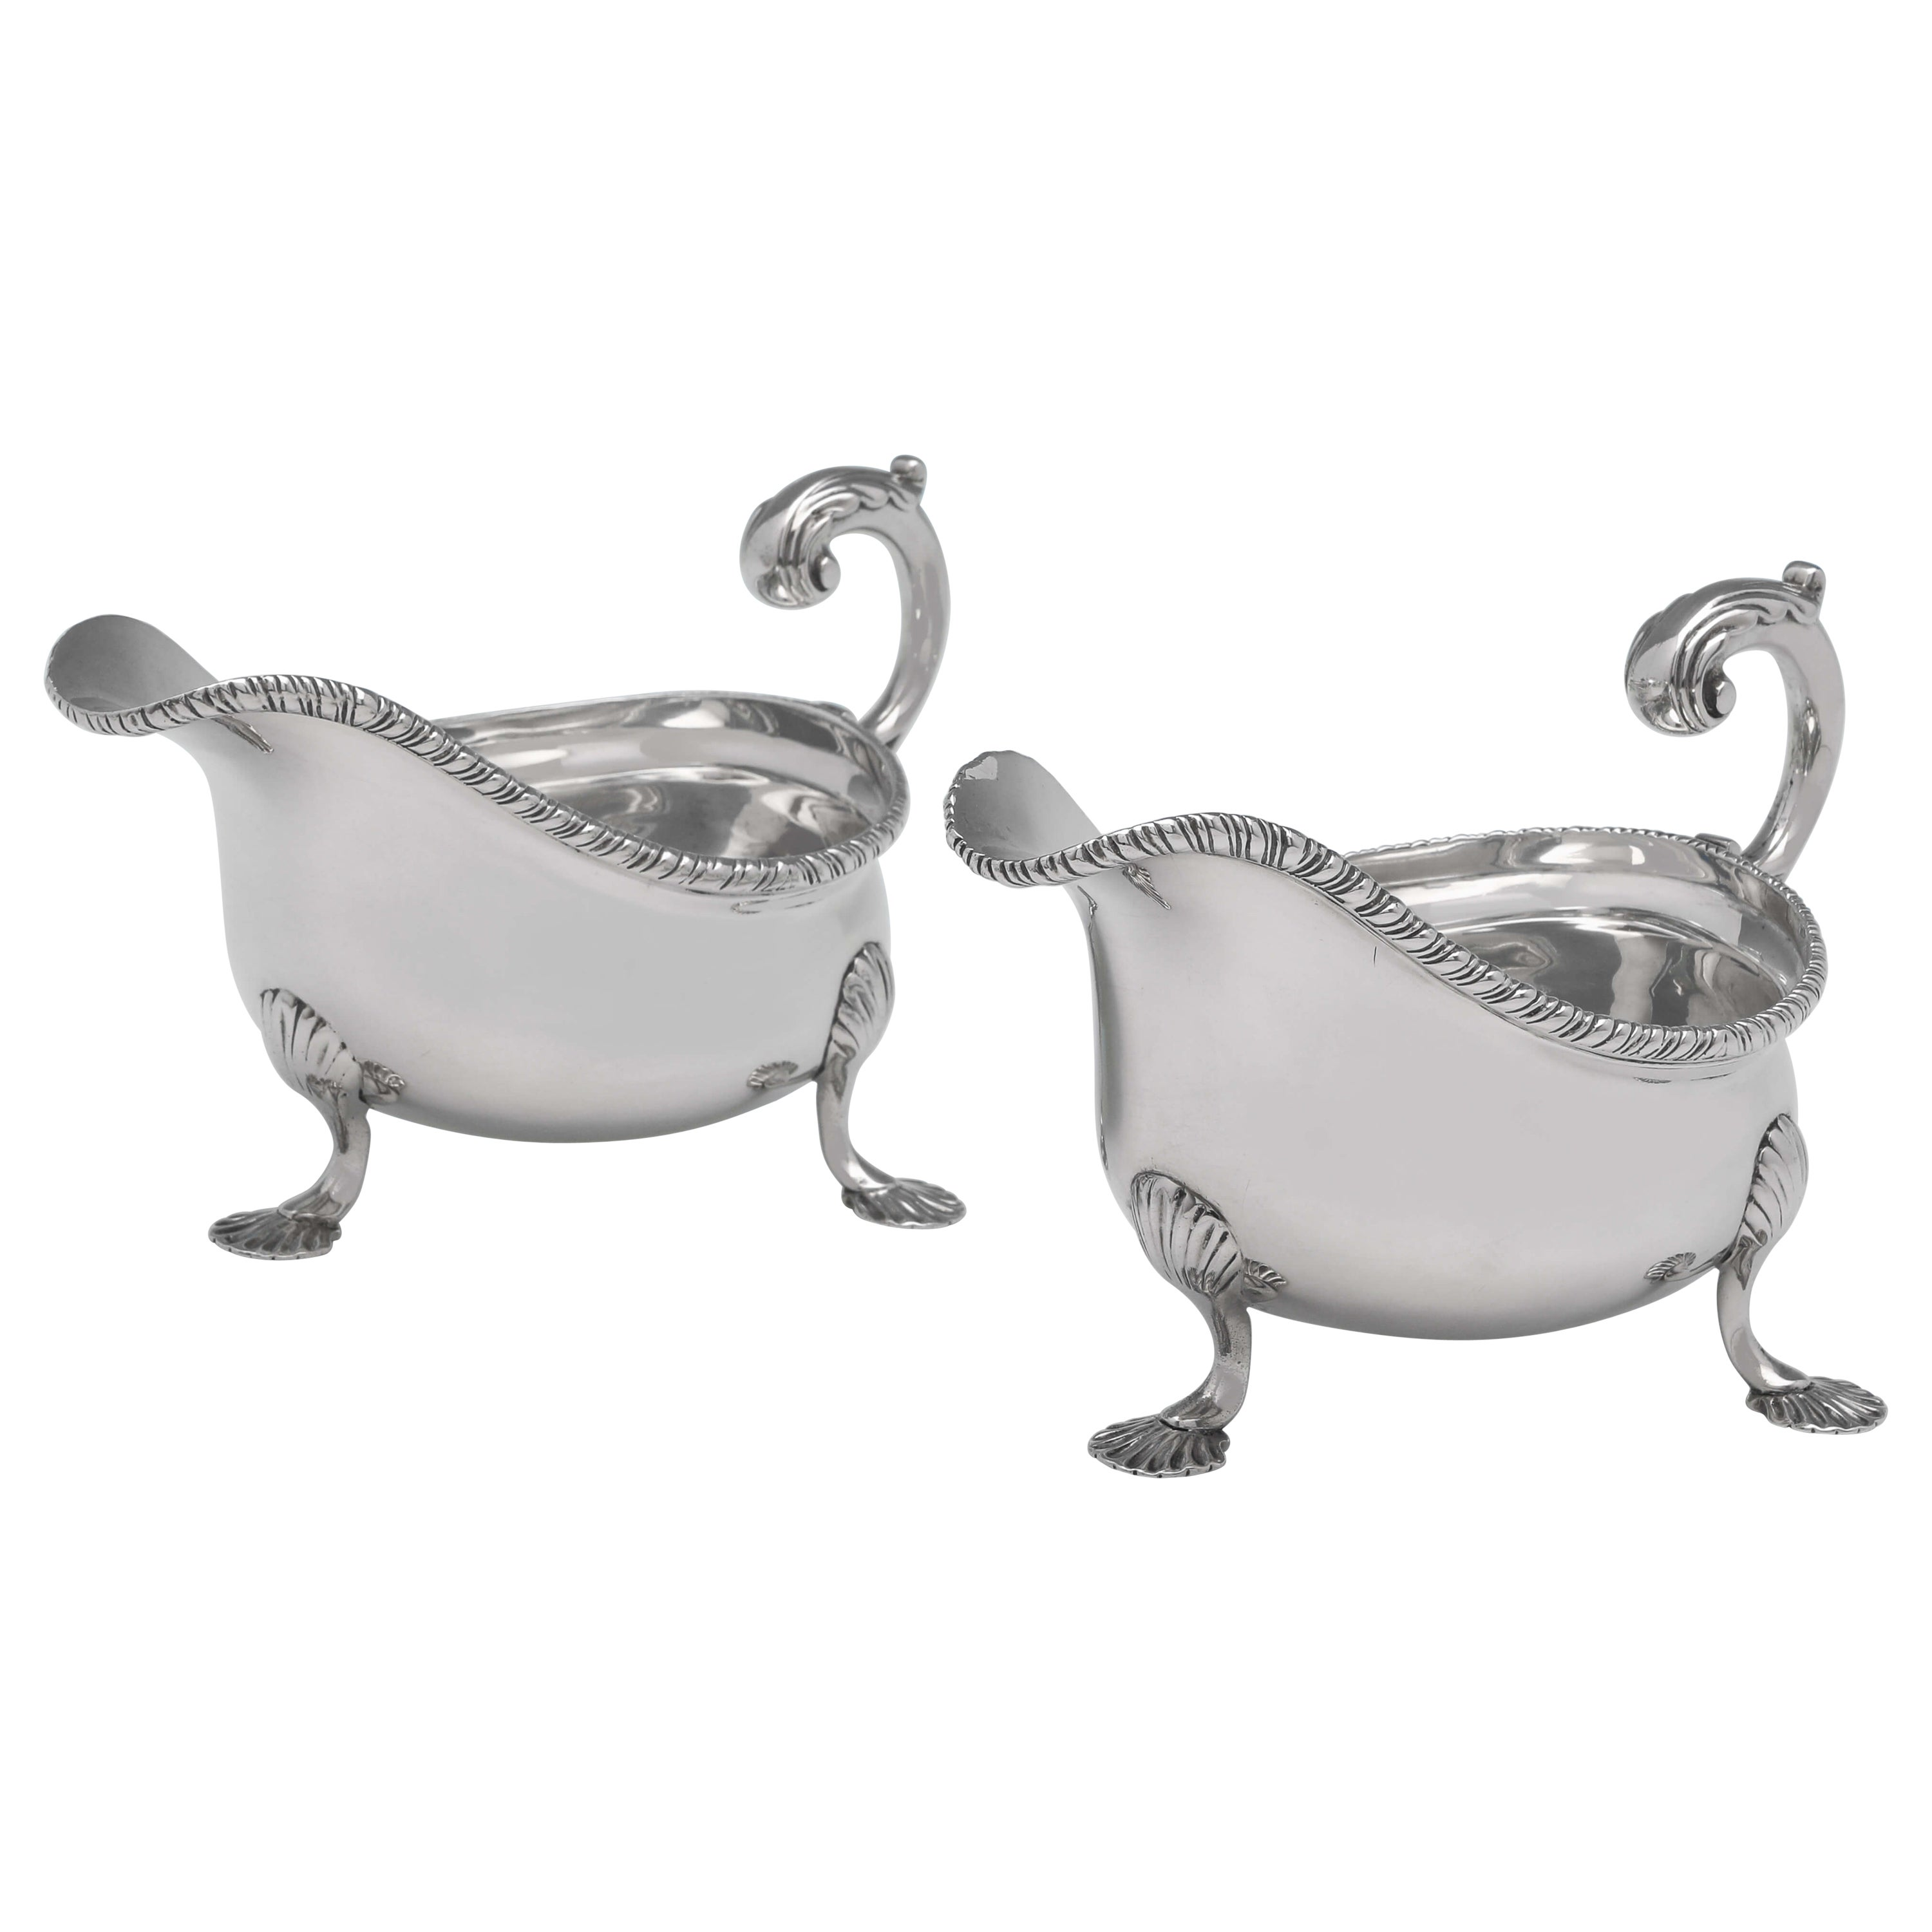 Victorian Sterling Silver Pair of Sauce Boats, London 1896, Lambert & Co.